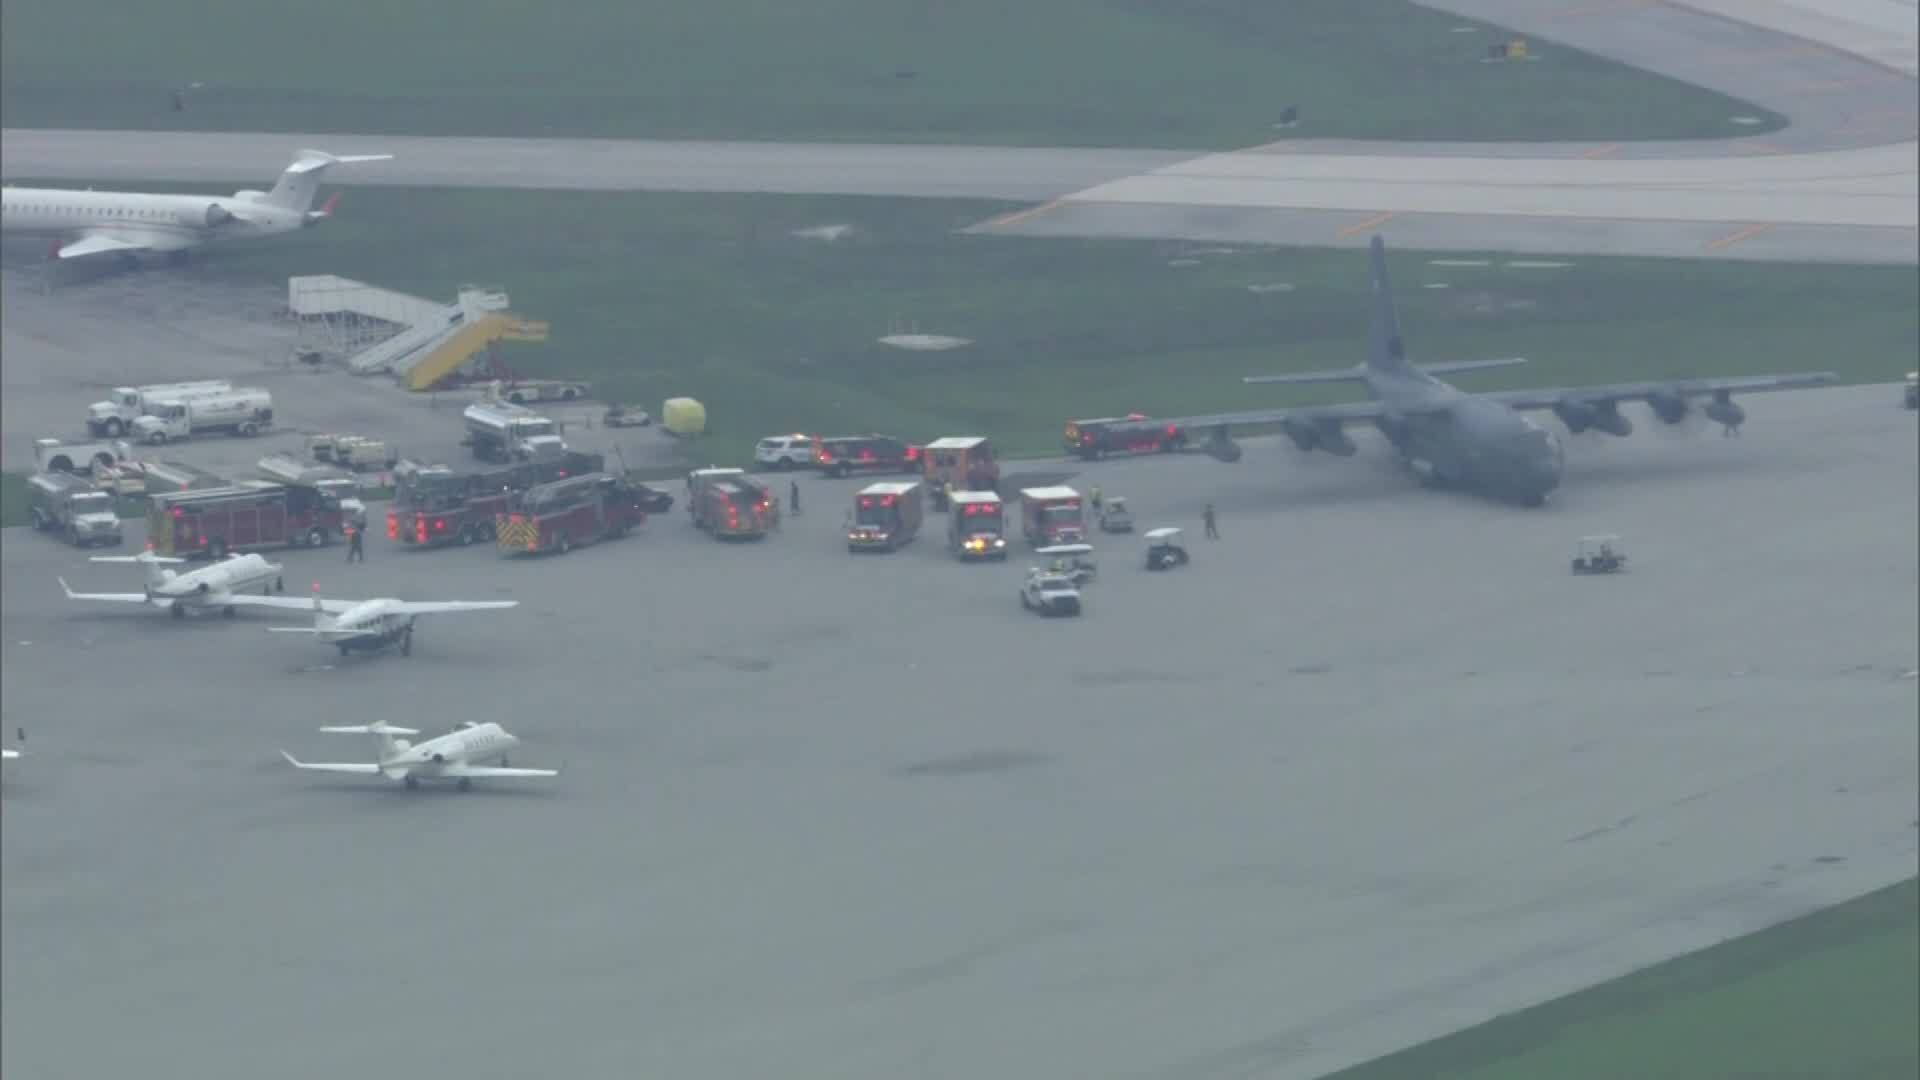 4 HURT PEOPLE FLOWN FROM BAHAMAS TO FT LAUDERDALE